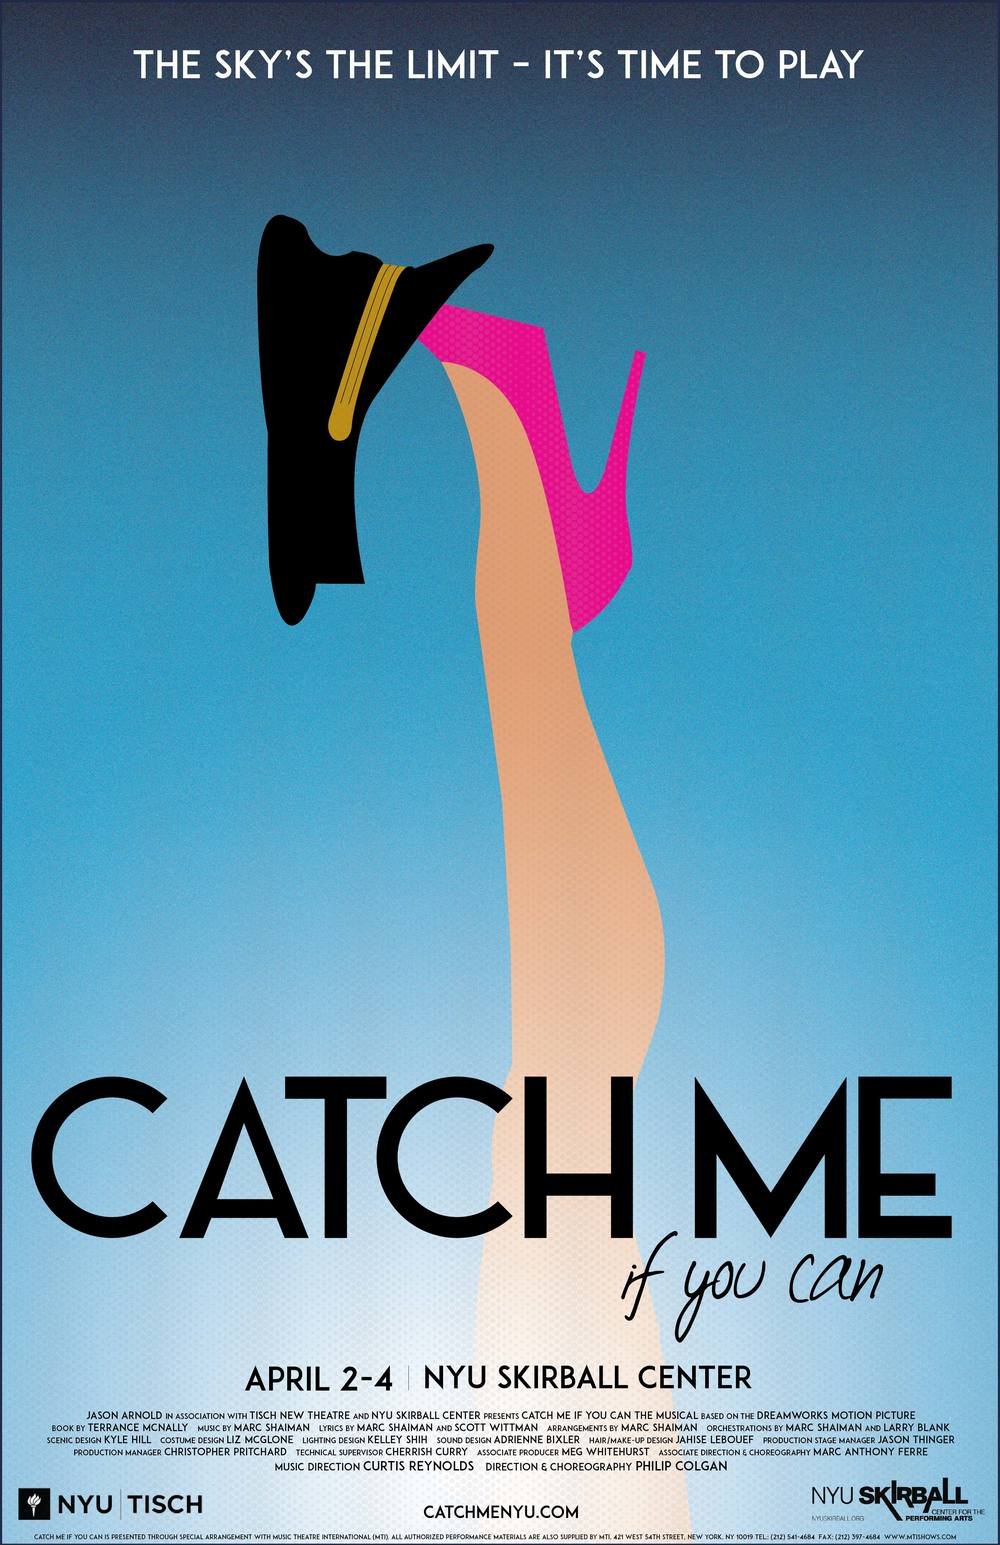 CatchMeProgramCover3-01.jpg